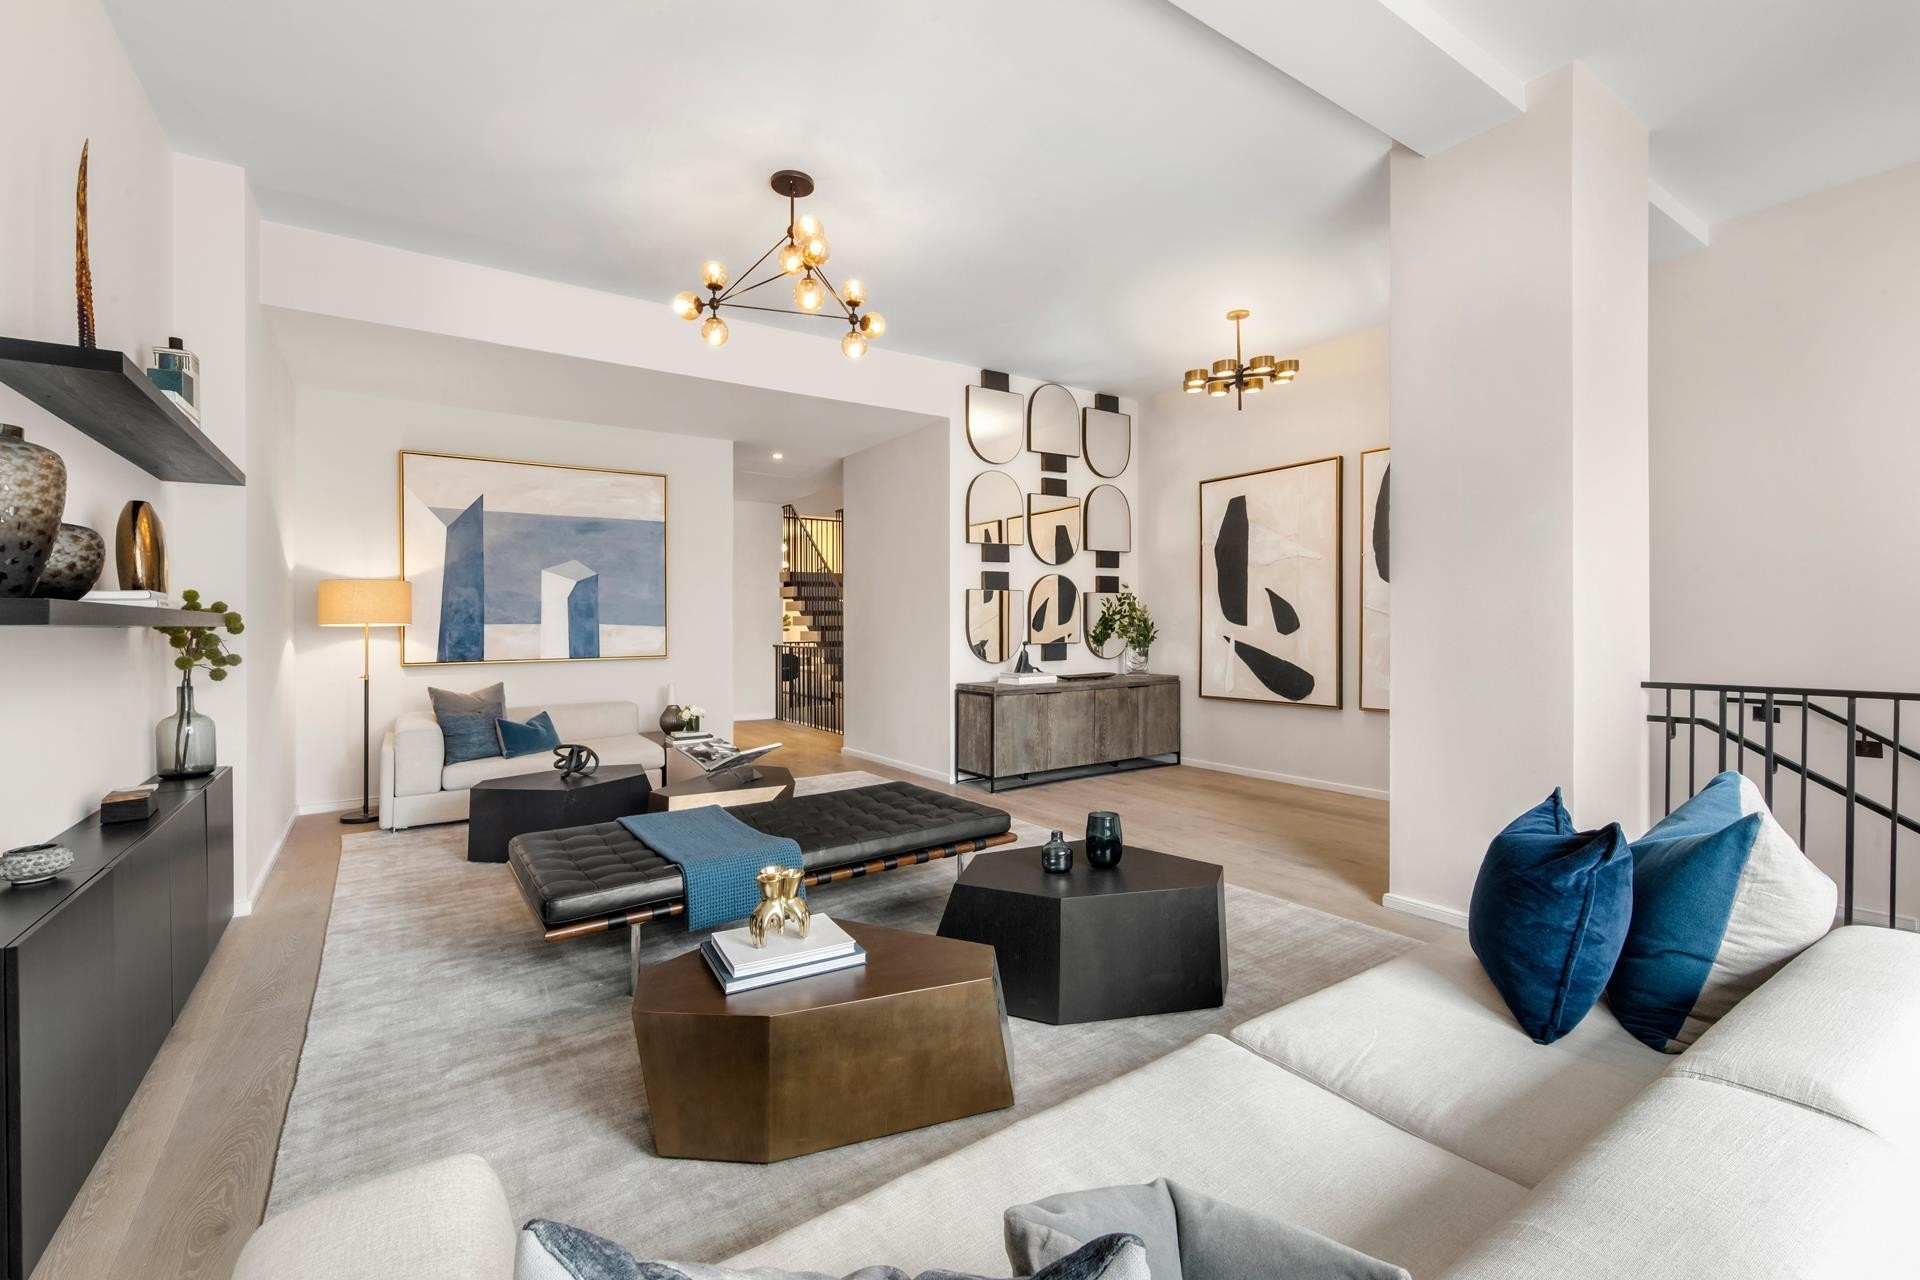 Condominium for Sale at 11 Beach St, THA TriBeCa, New York, NY 10013